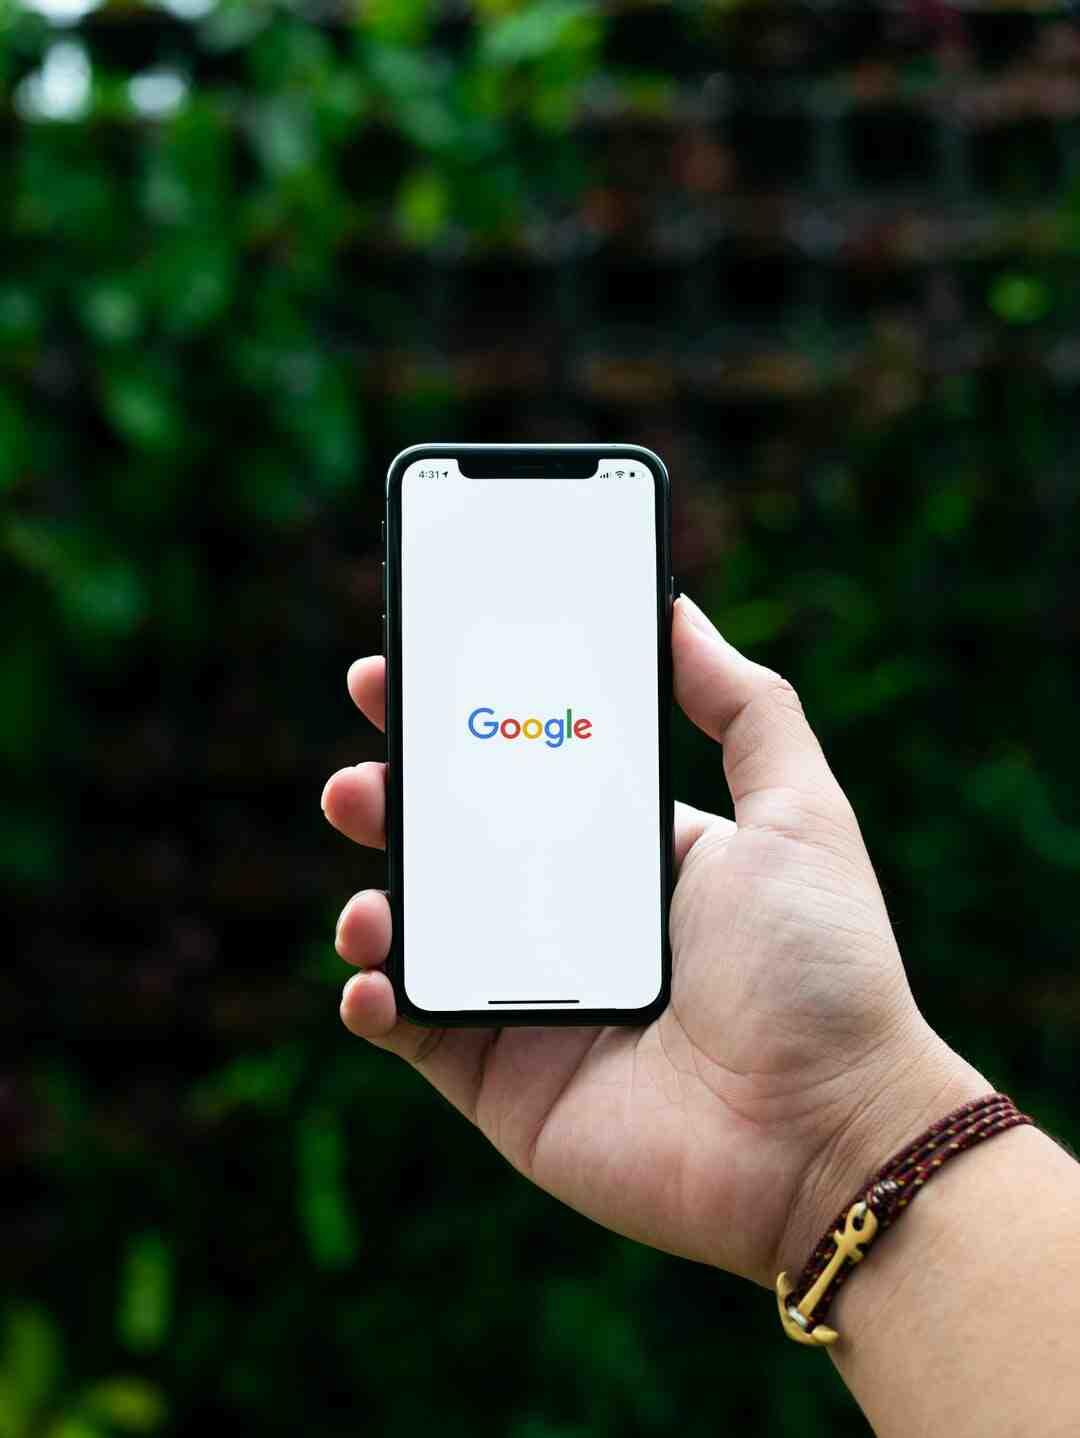 How do I search Google accurately?